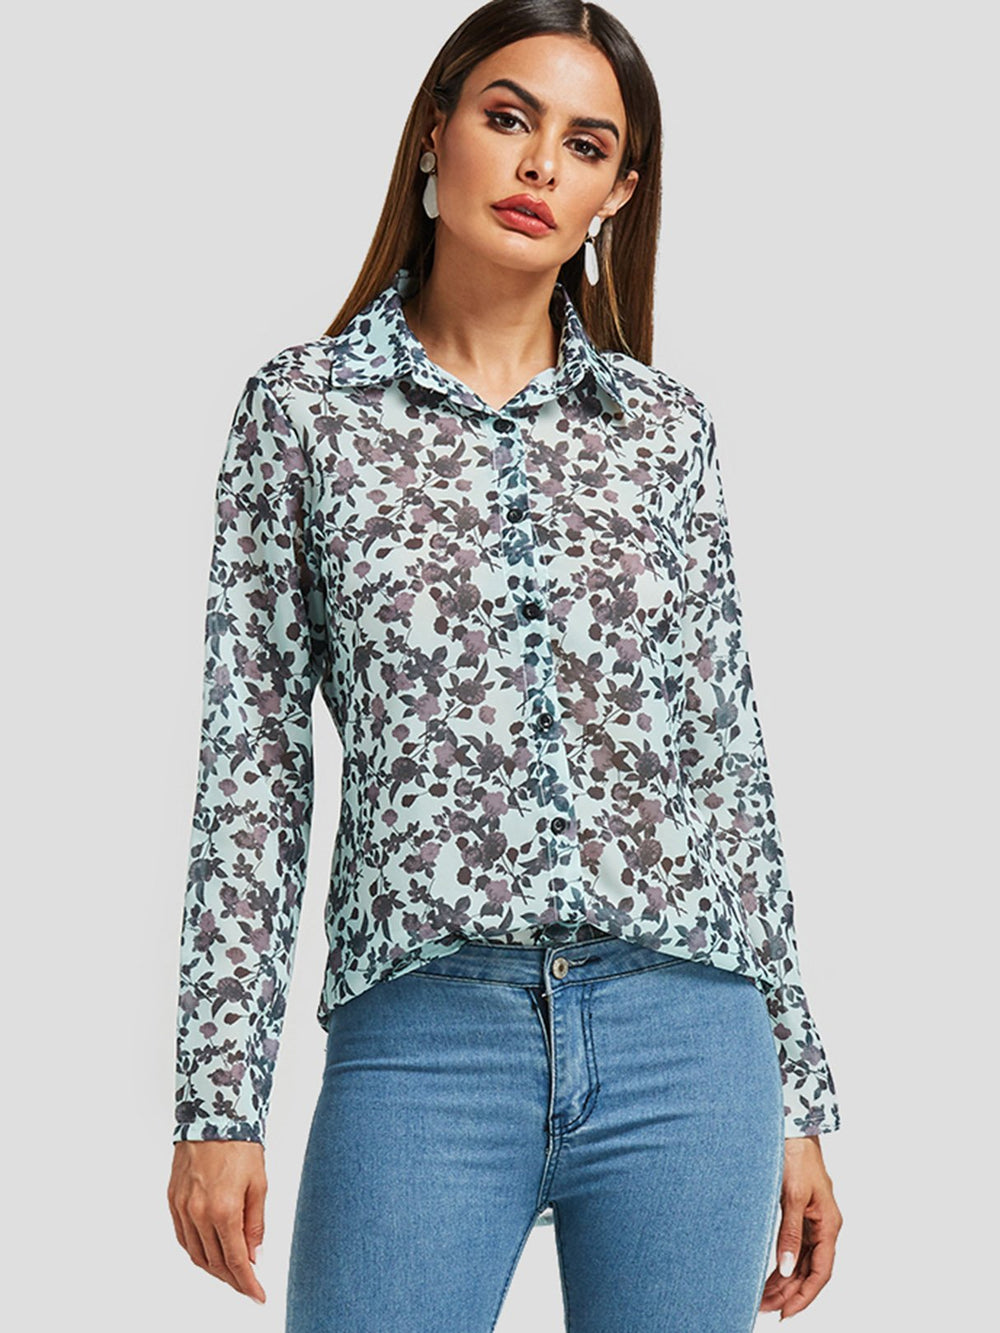 Random Floral Print See-Through Long Sleeve Blouses